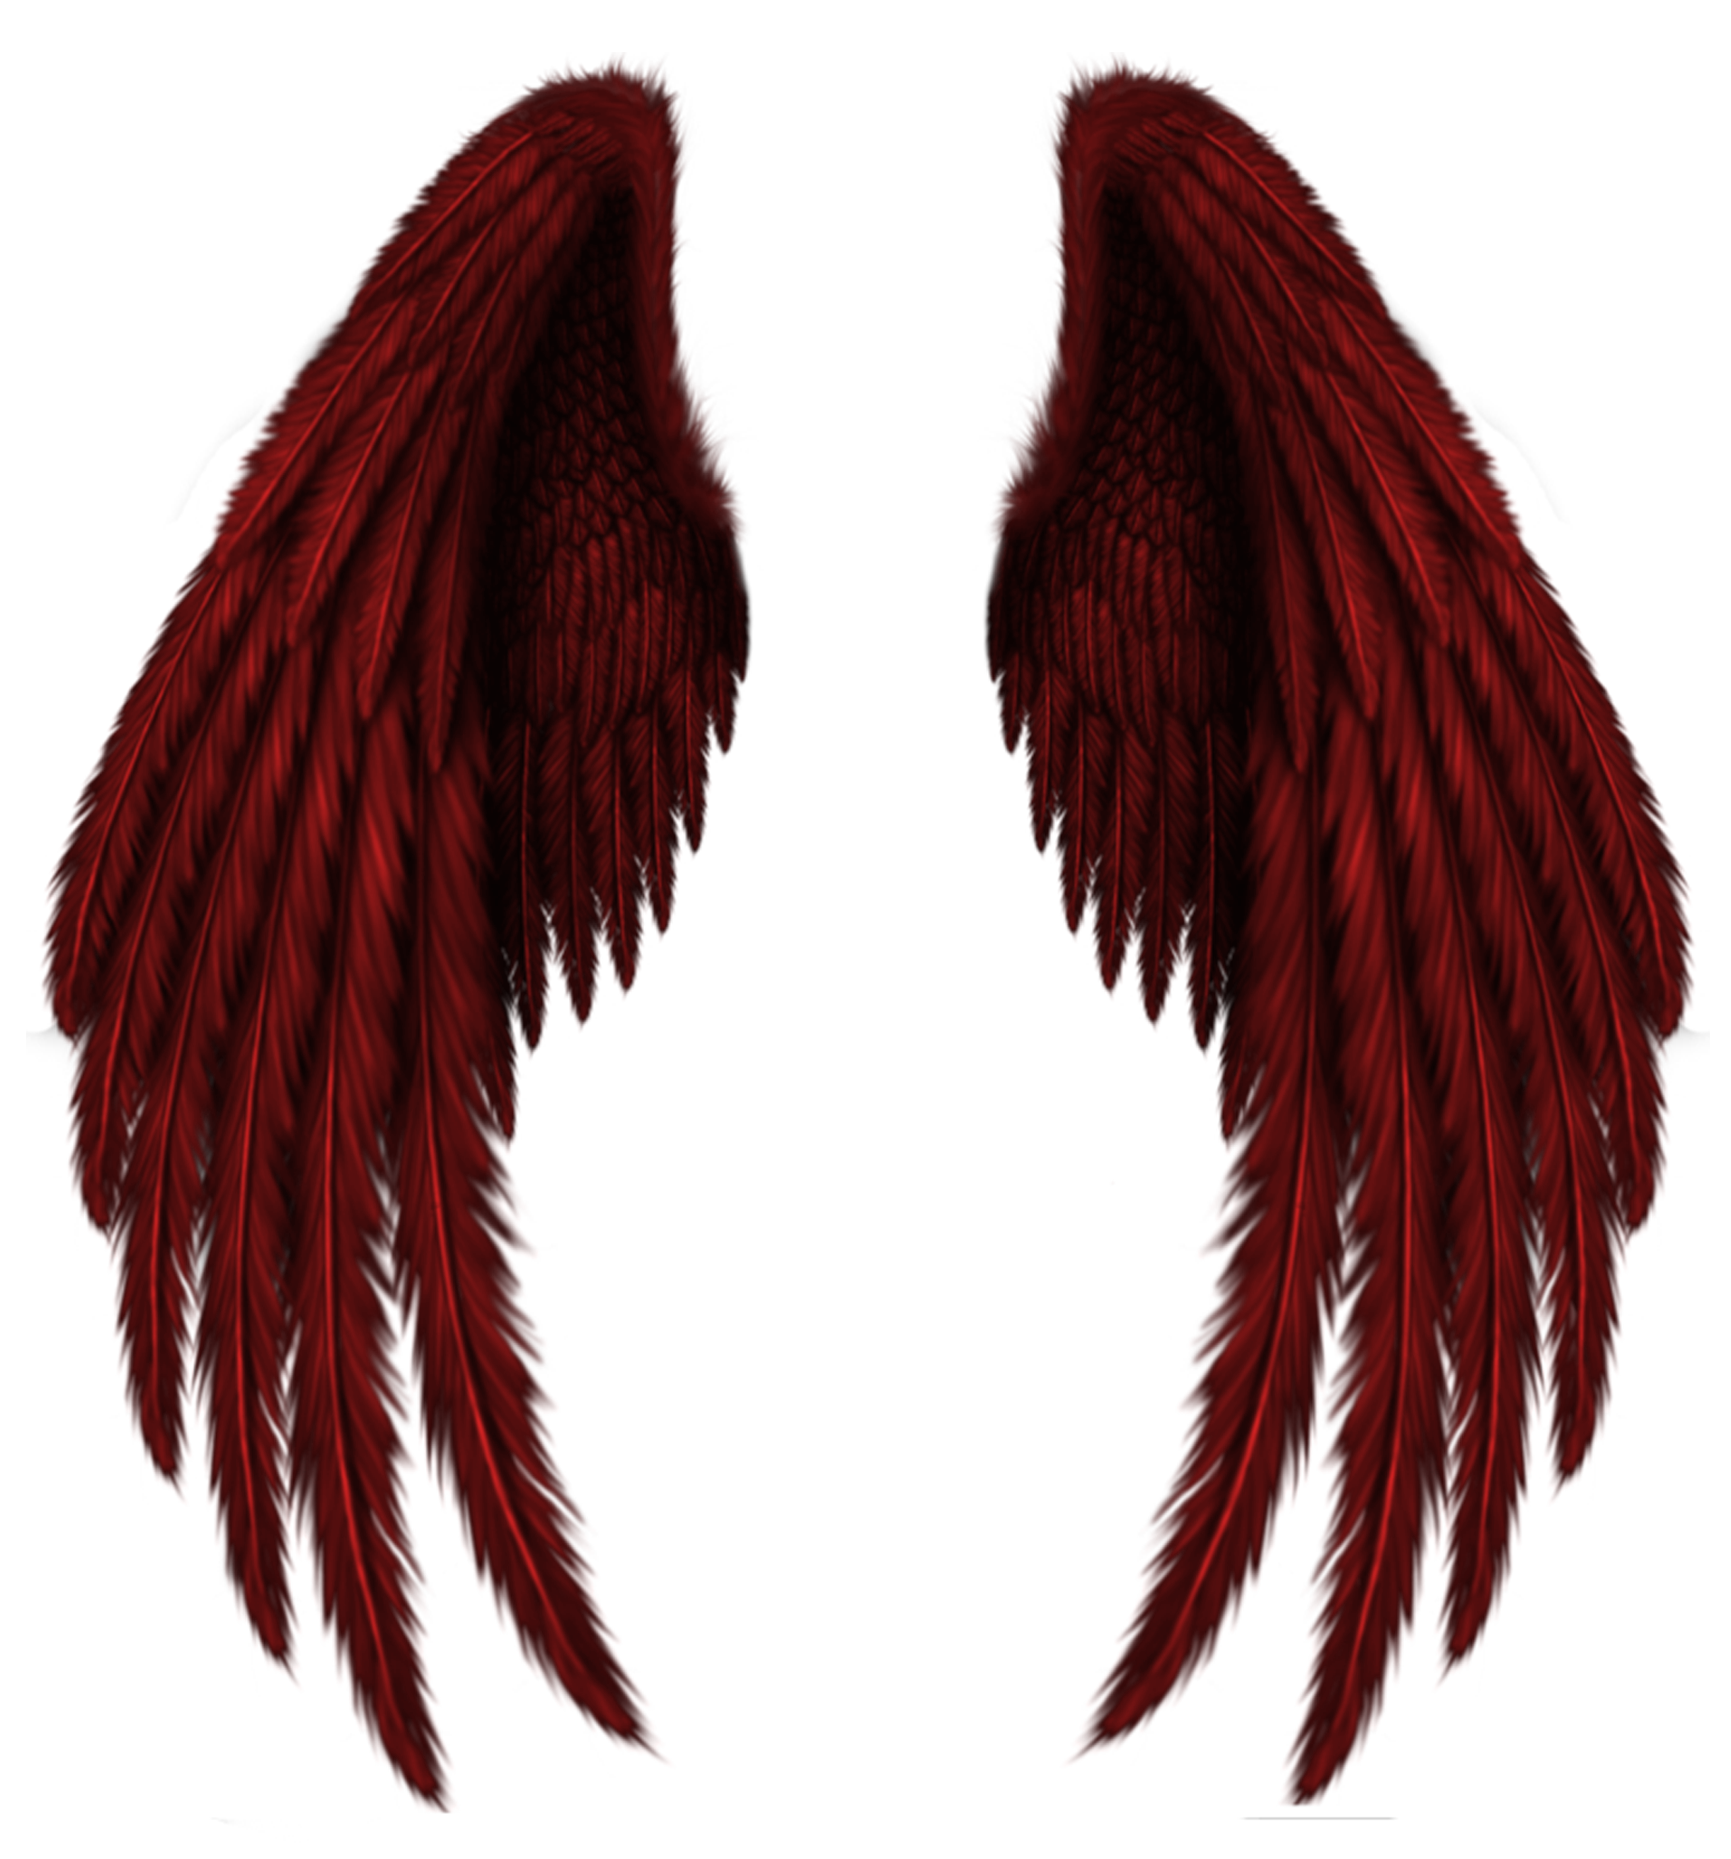 Pin By Ann Techlin On Artistically And Creatively Wings Png